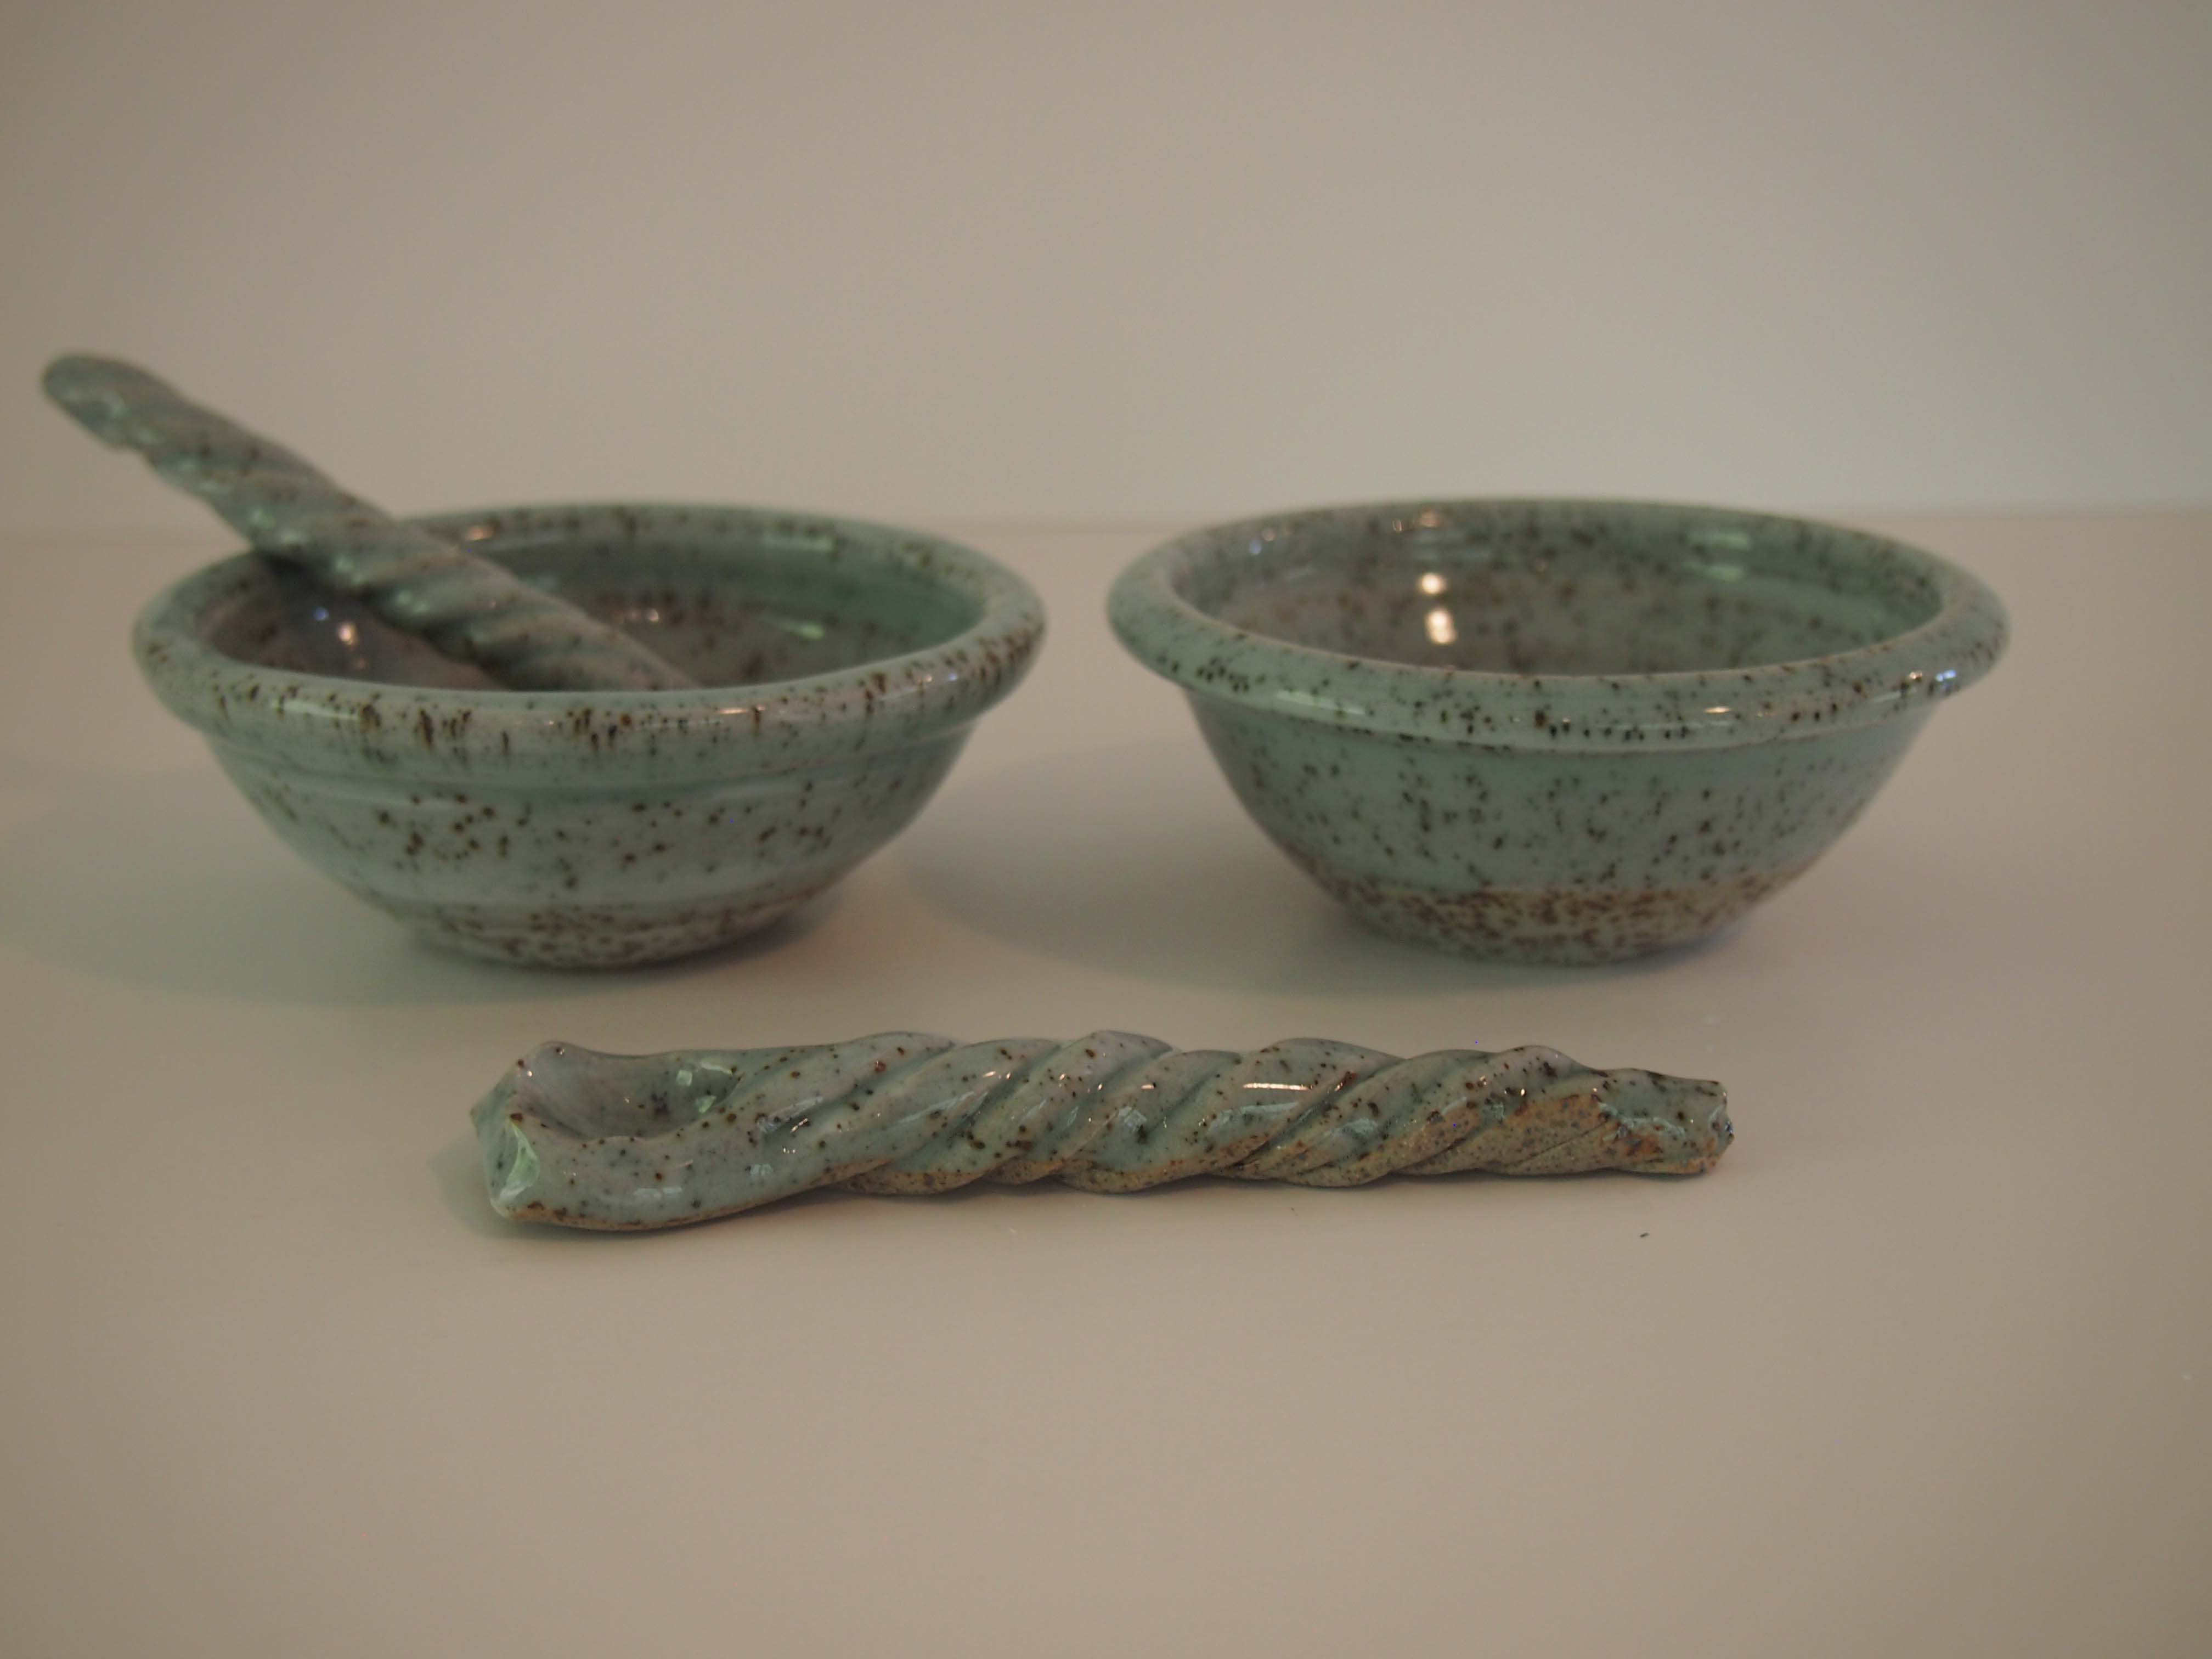 Stoney dipping bowls and spoons